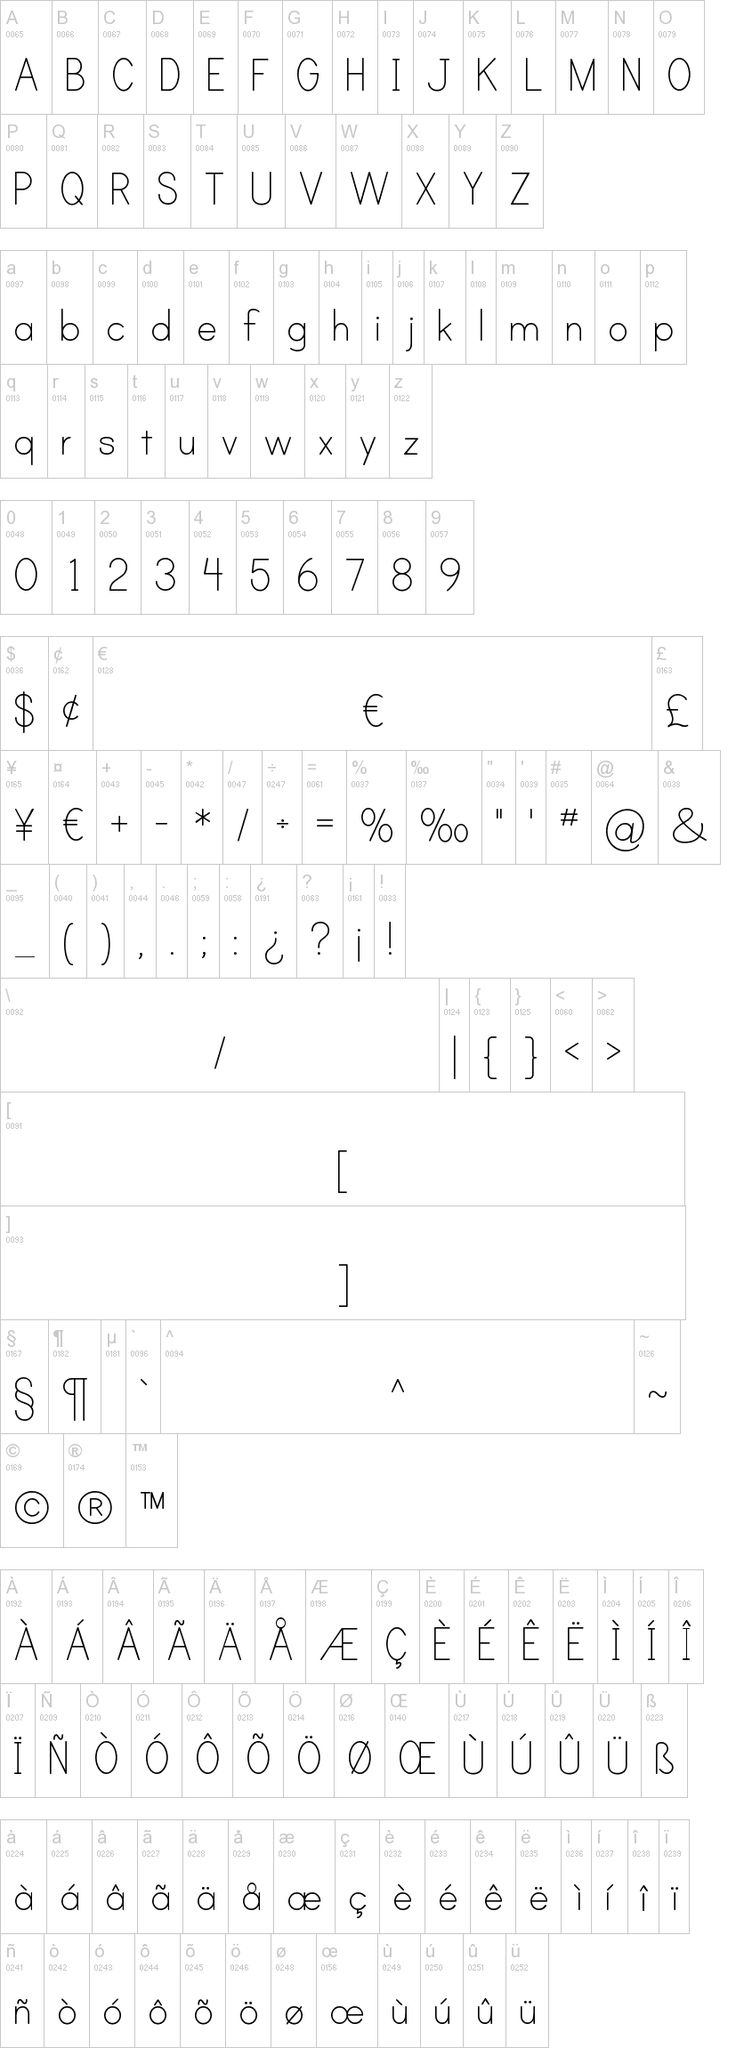 how to make a dashed line in word